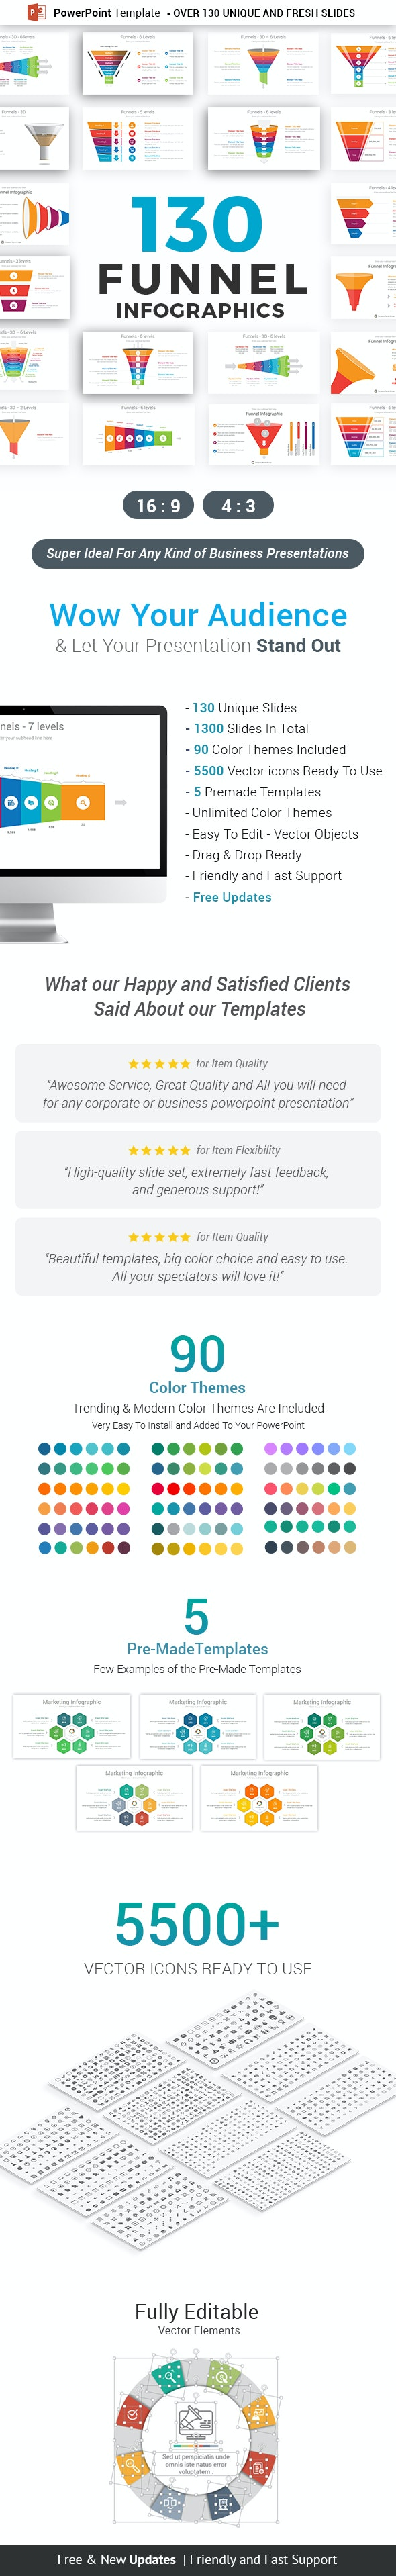 Funnel Infographics PowerPoint Template diagrams - Business PowerPoint Templates